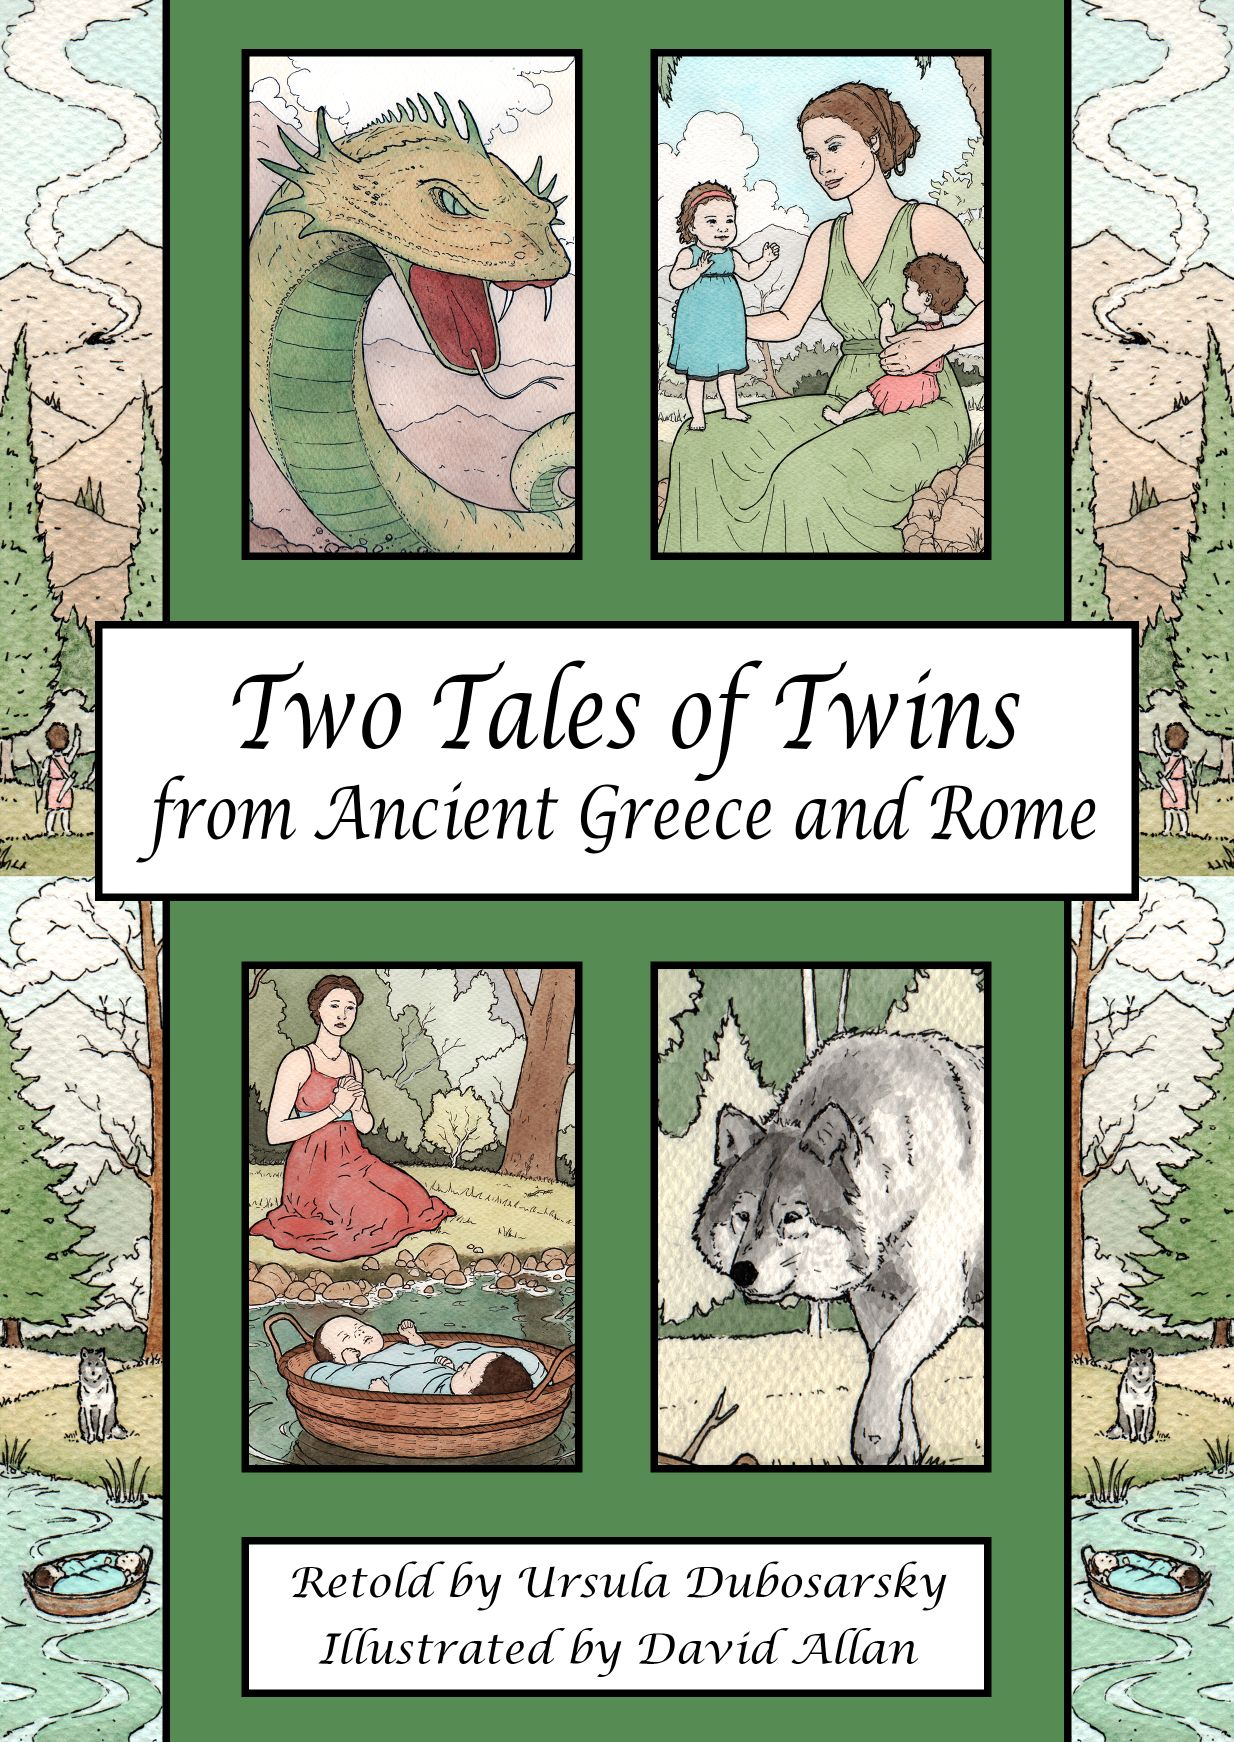 two tales of twins cover.jpg